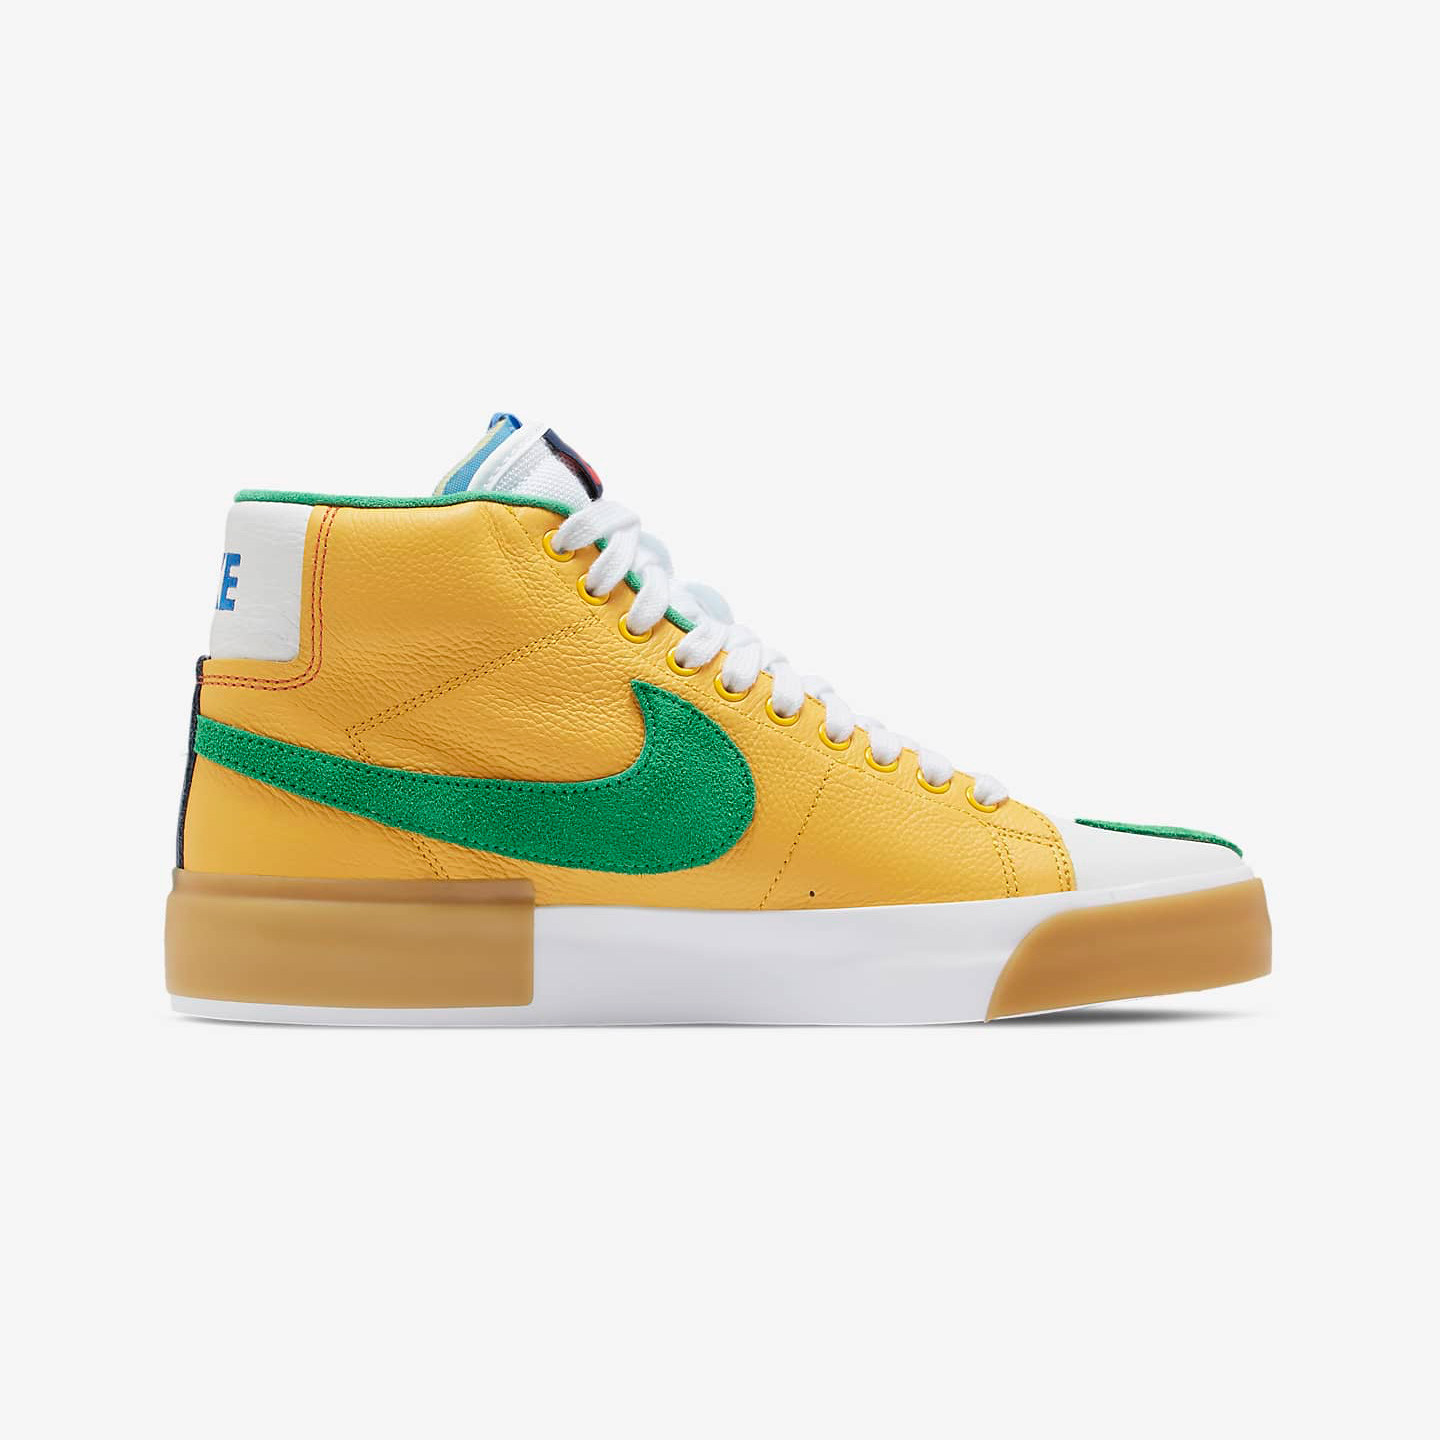 Nike SB Zoom Blazer Mid Edge 'Multi' Safety Orange / Lucky Green DA2189-800